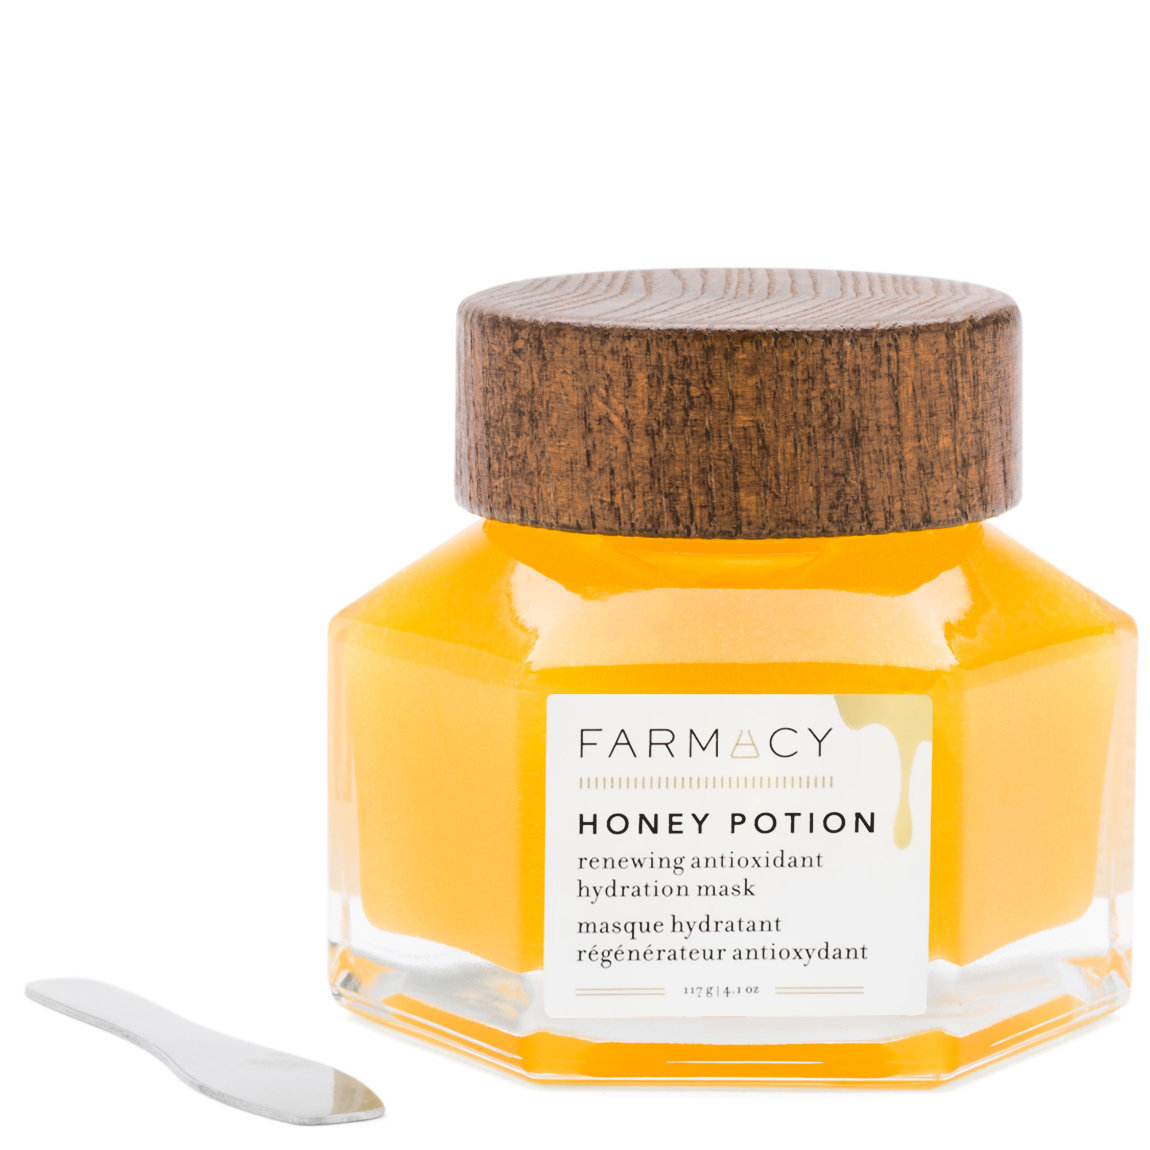 Farmacy Honey Potion Renewing Antioxidant Hydration Mask 4.1 oz